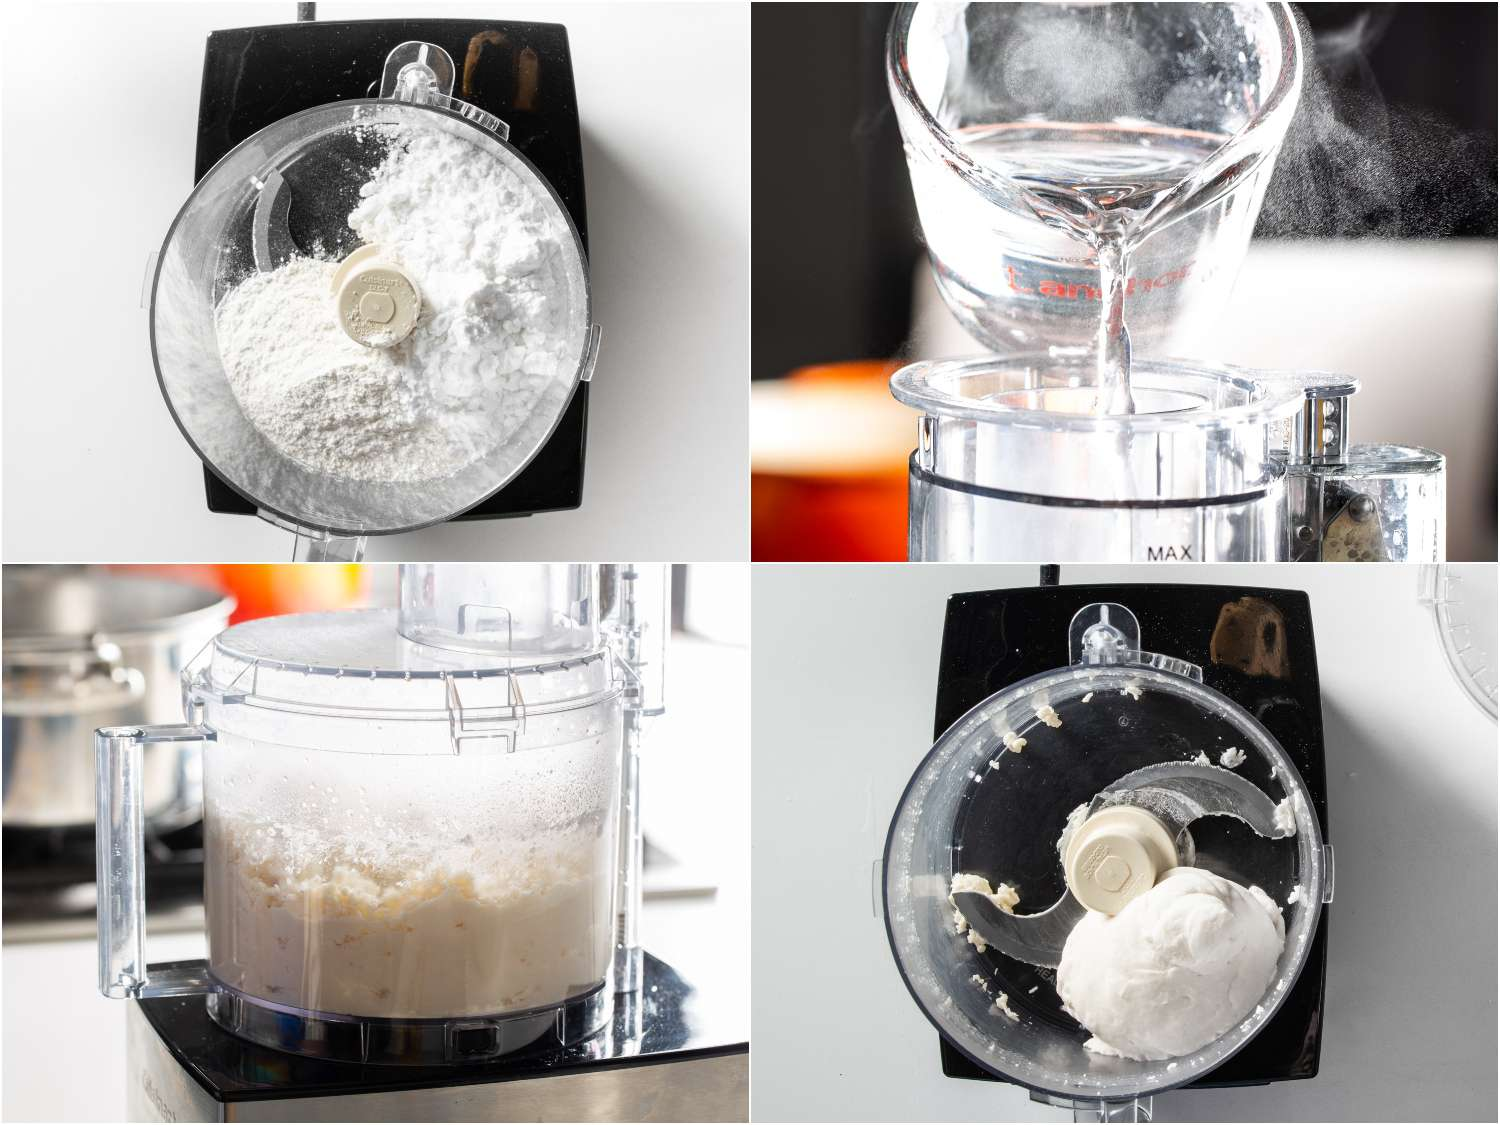 Preparing the dough for noodles by adding pastry flour, potato starch, and salt to a food processor, then adding boiling water while the processor is running until the dough forms